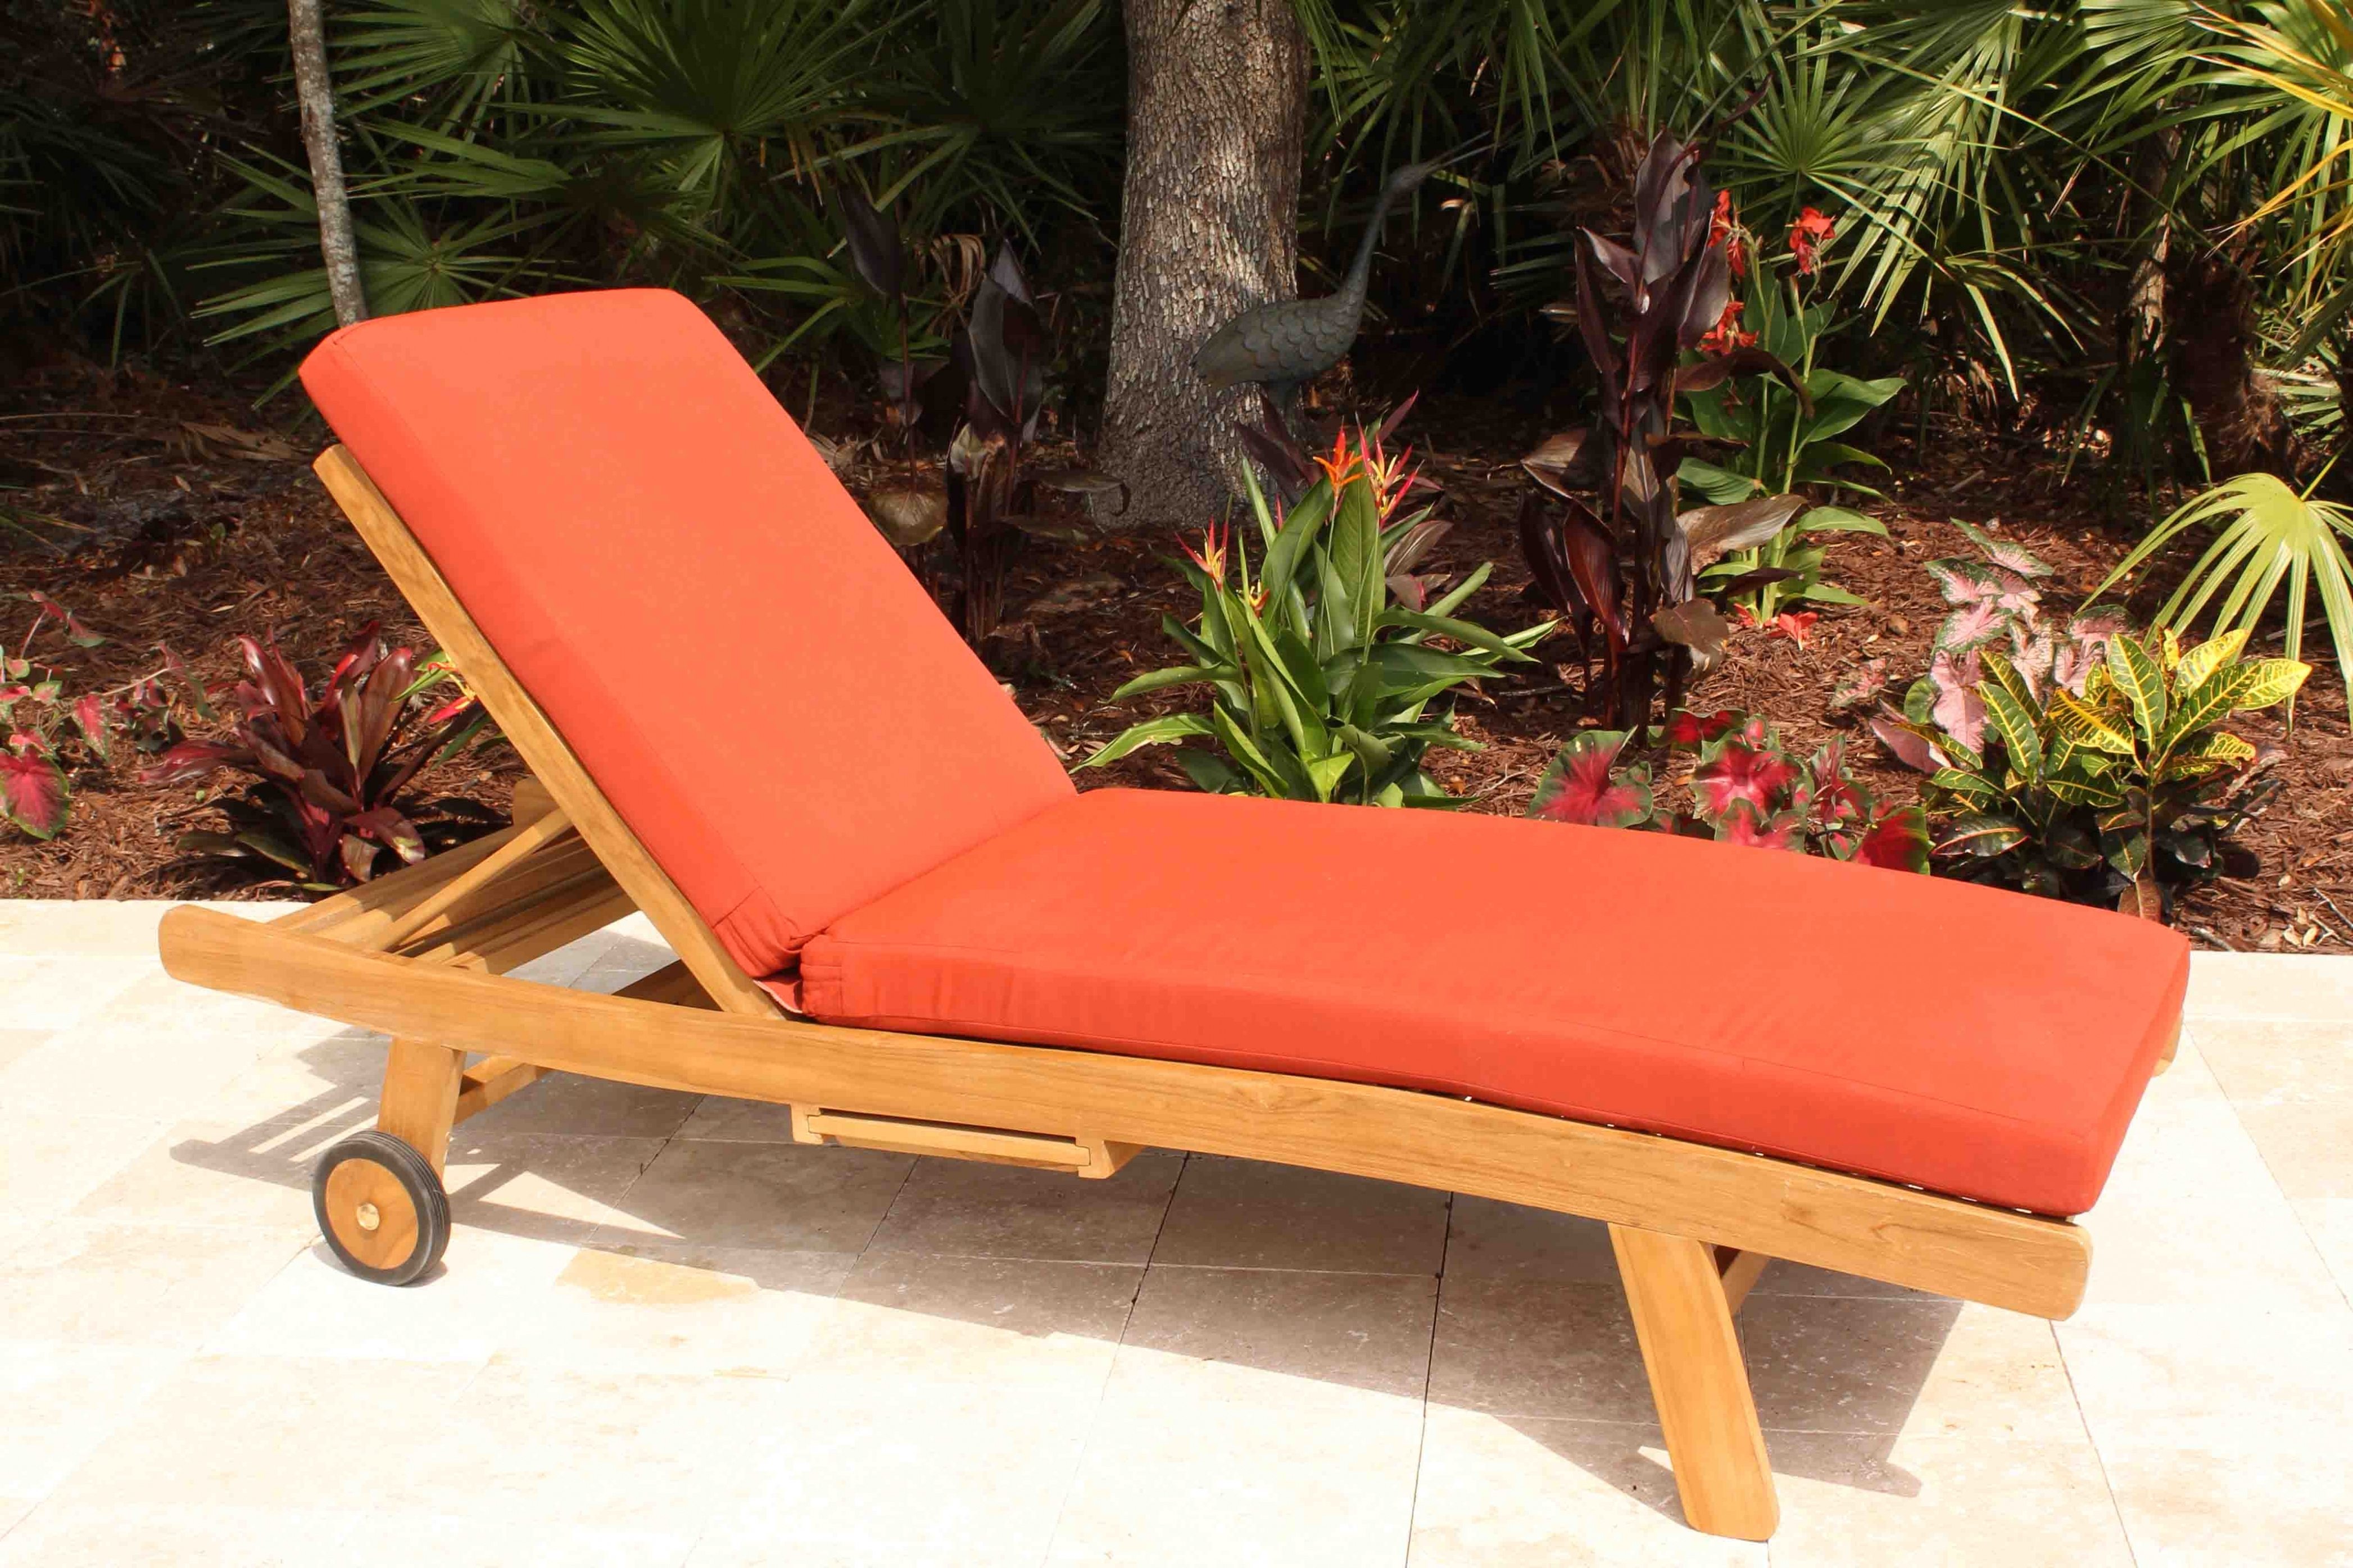 Sunbrella Chaise Lounges Intended For Favorite Outdoor: Sale Sunbrella Fabric Chaise Lounge Cushion (View 15 of 15)